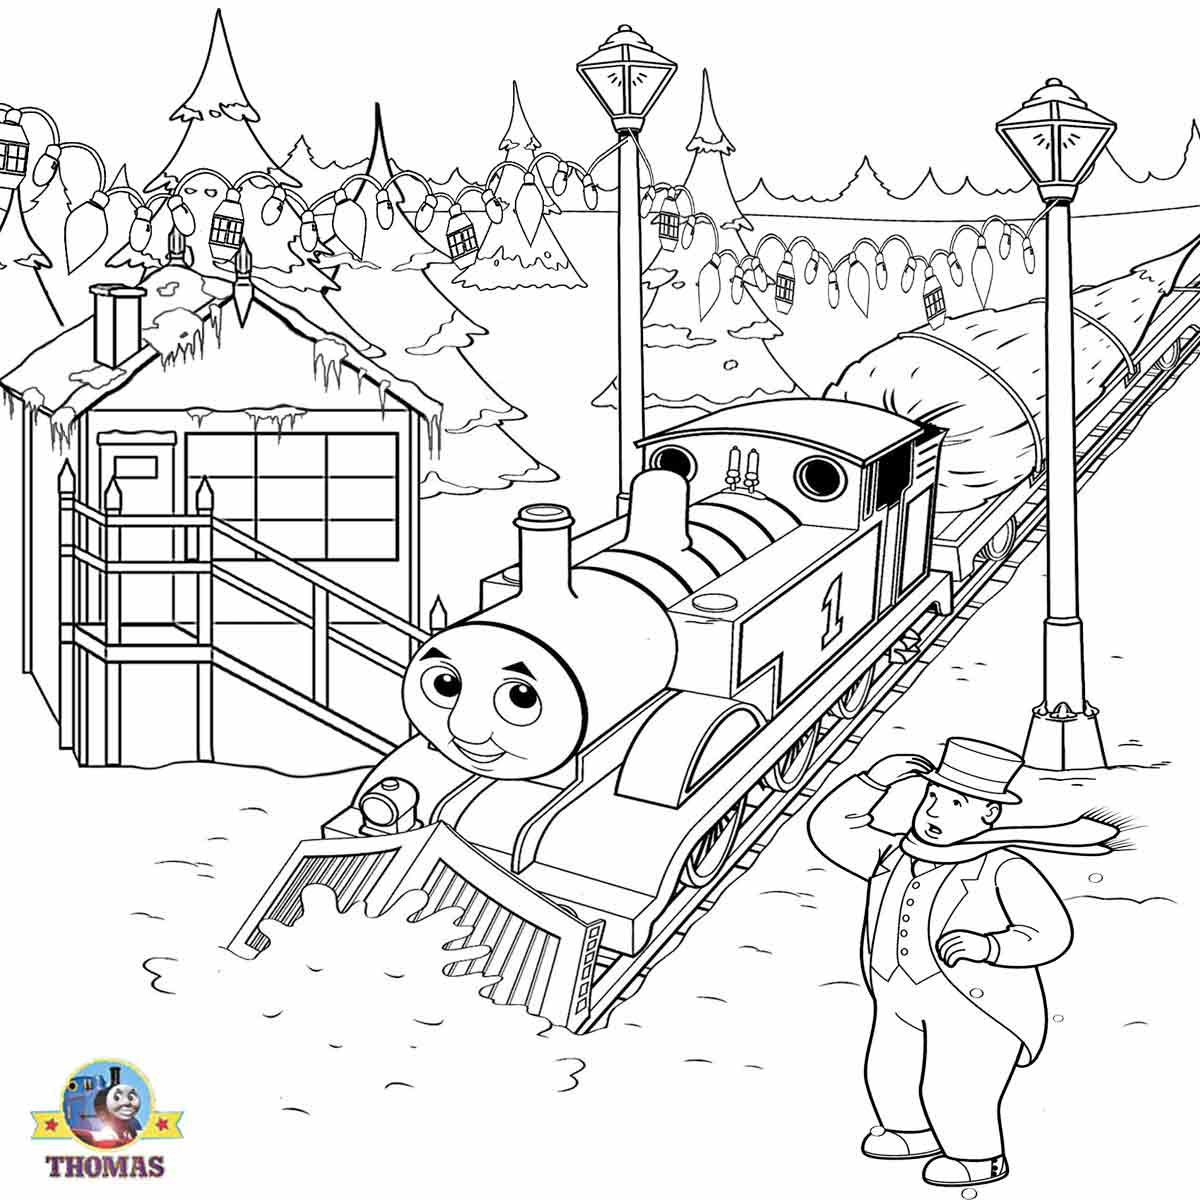 Thomas christmas coloring sheets for children printable for Train coloring book pages